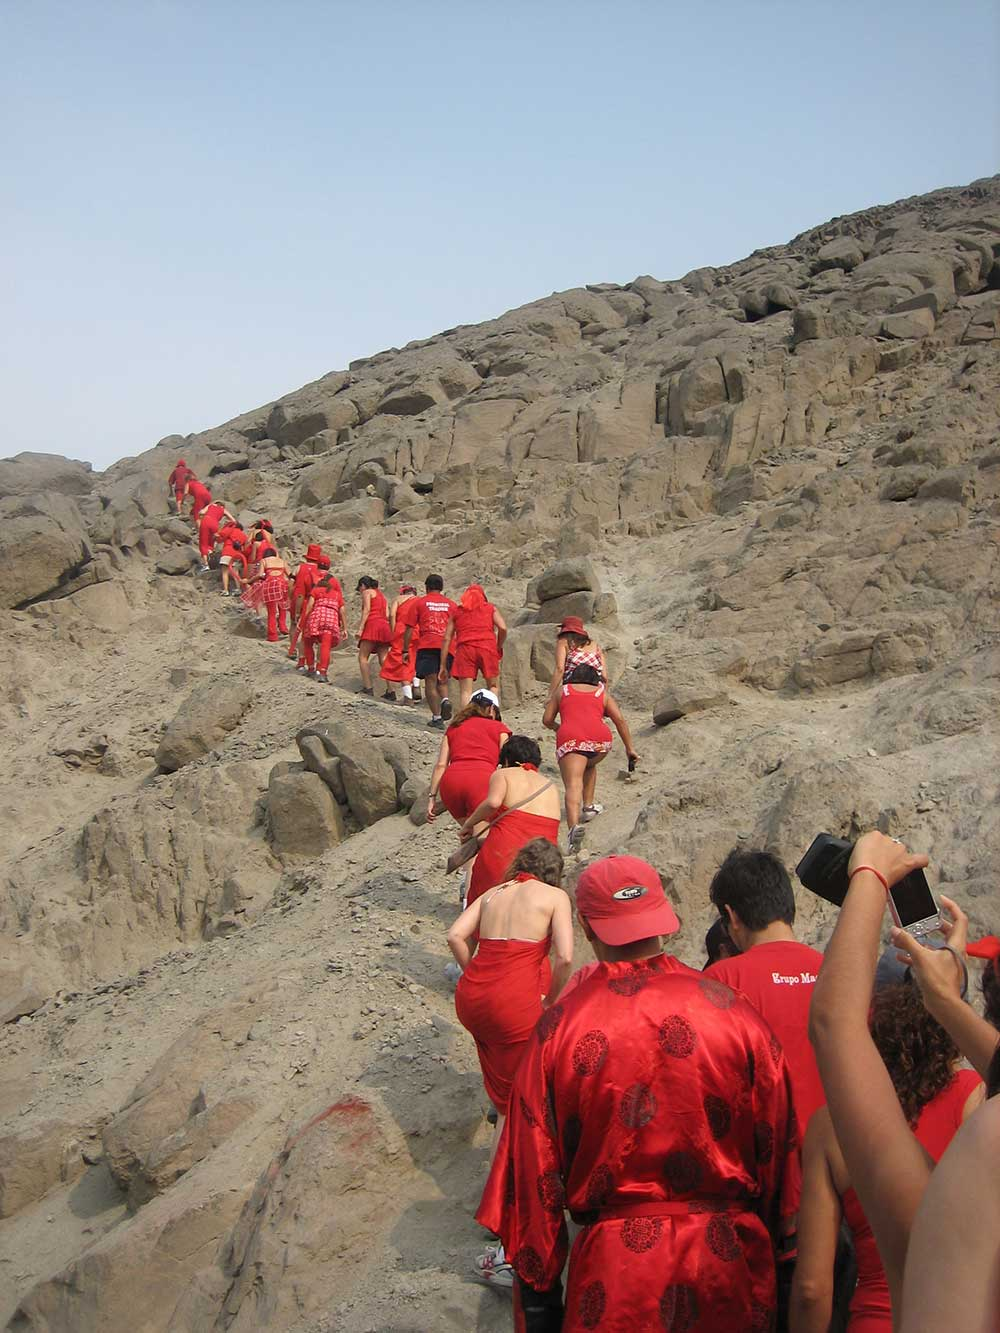 The first Red Dress Hash in South America, held in Chaclacayo, near Lima, Peru.